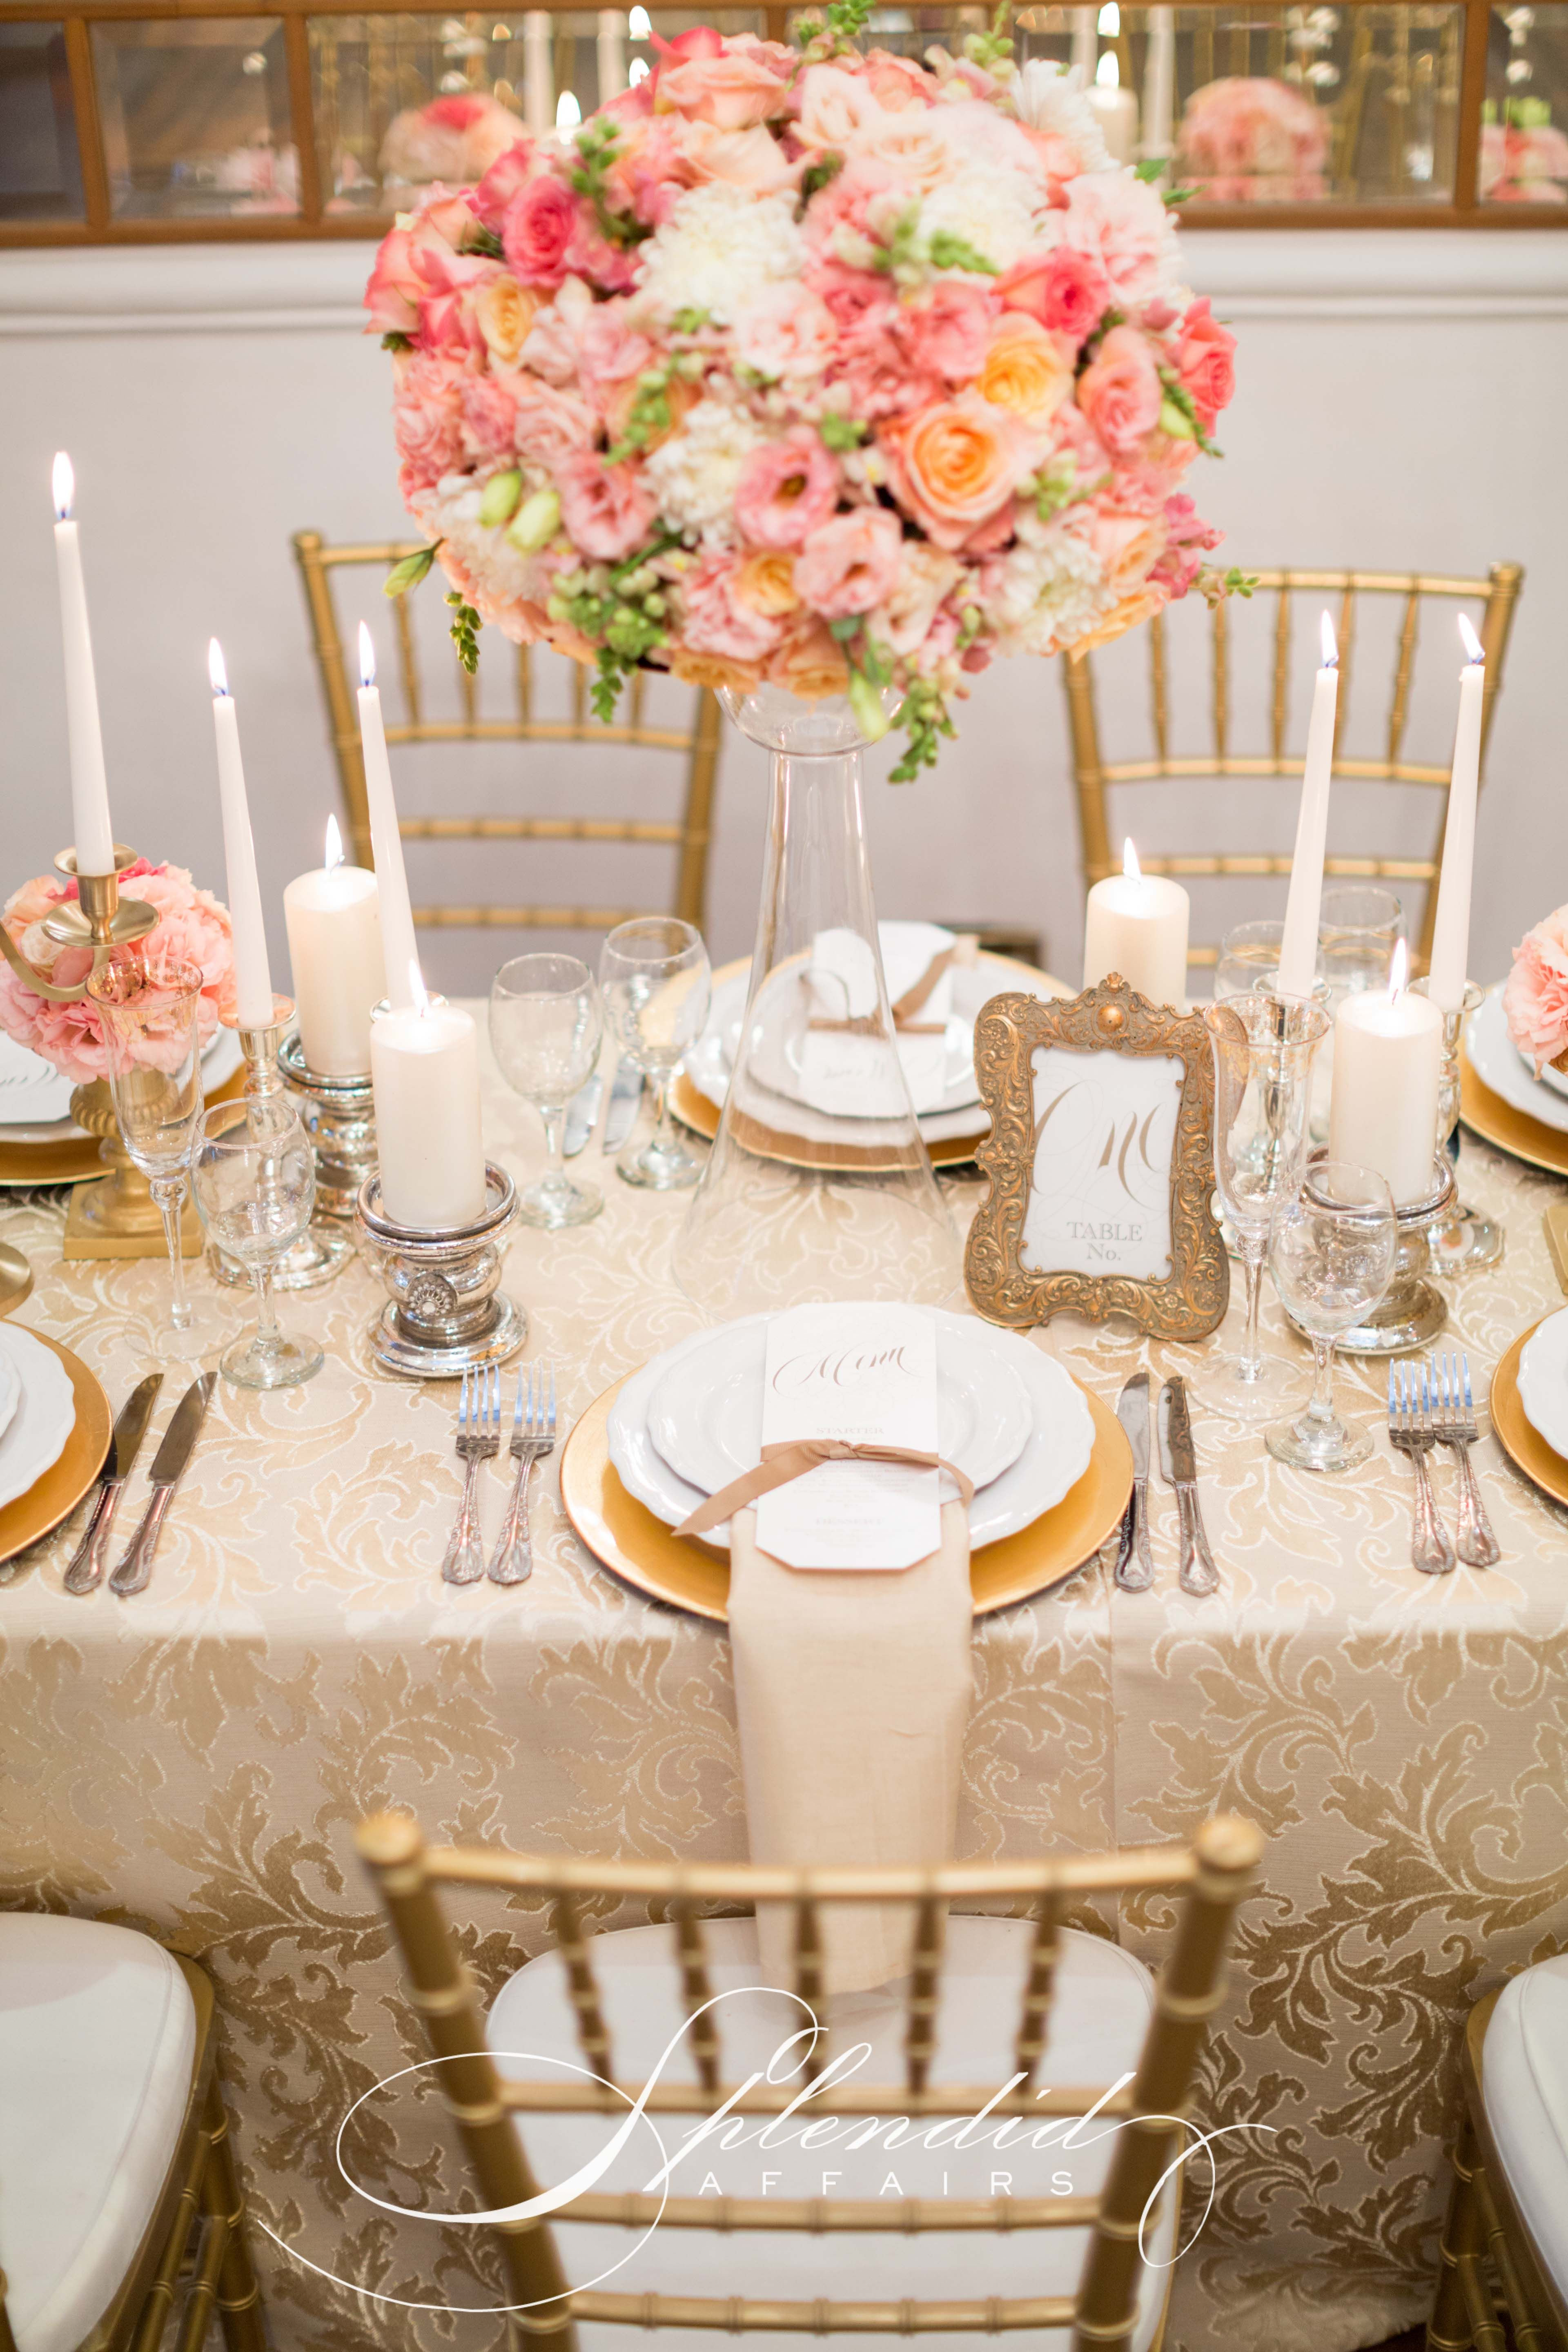 coral and gold wedding reception inspirations flowers decor and styling by splendid affairs photography - Wedding Reception Decor